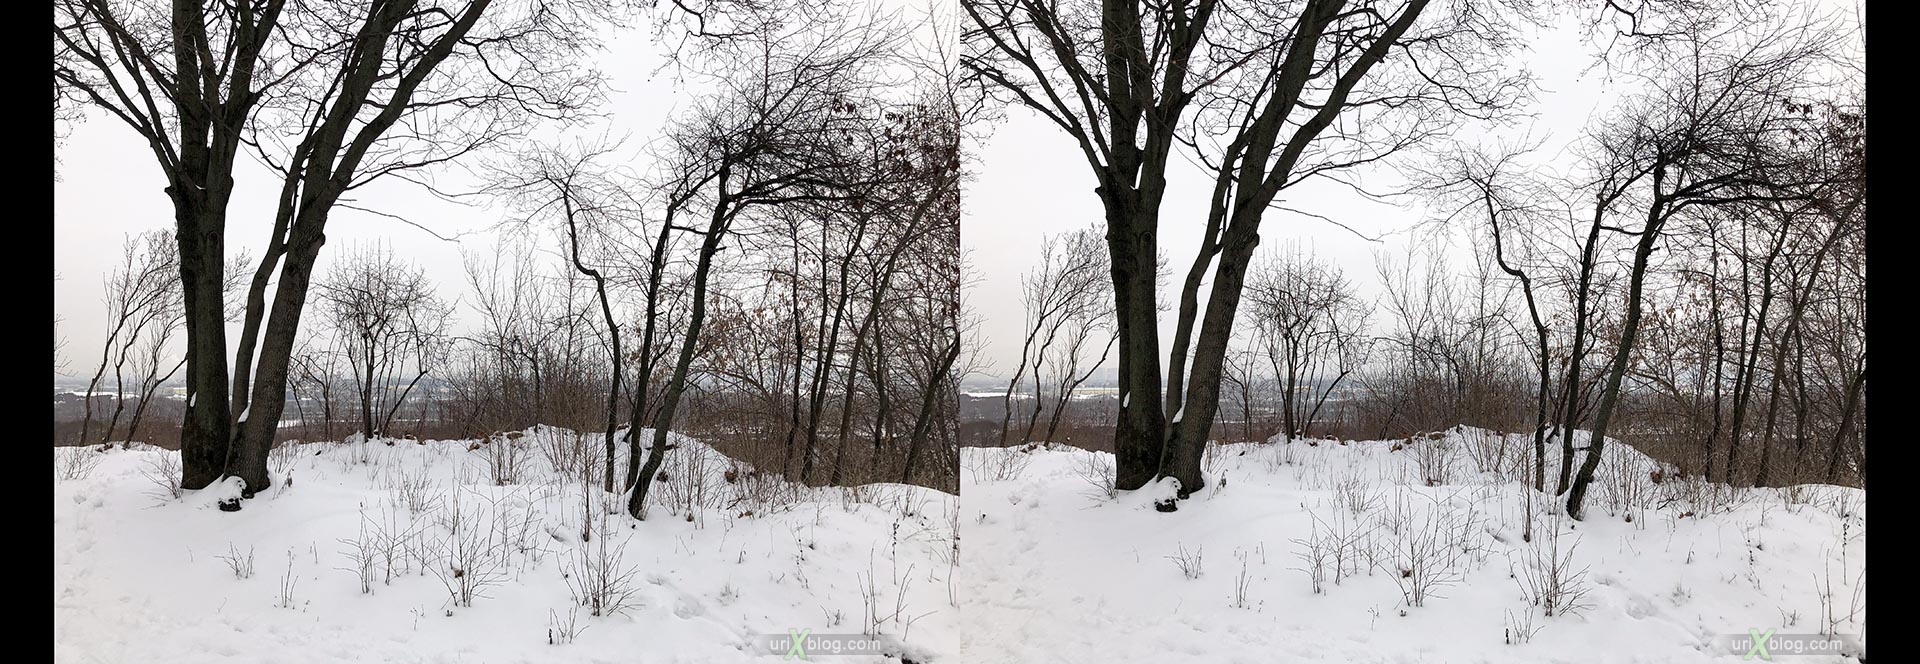 Kolomenskoye park, winter, snow, Russia, 3D, stereo pair, cross-eyed, crossview, cross view stereo pair, stereoscopic